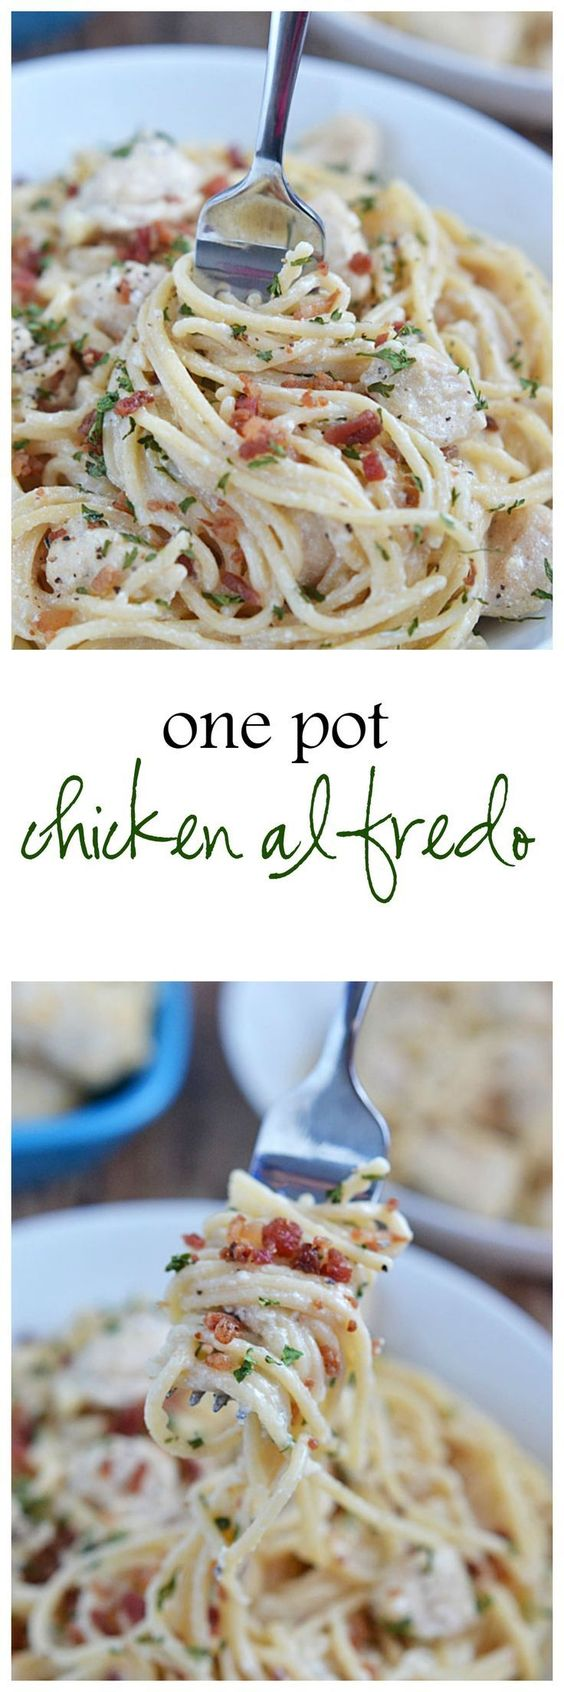 This easy and creamy One Pot Chicken Alfredo is ready in about 30 minutes - and tastes just as good as a dish that you'd order at your favorite Italian restaurant. Even better? Everything - including the pasta - is cooked in just one pot!: